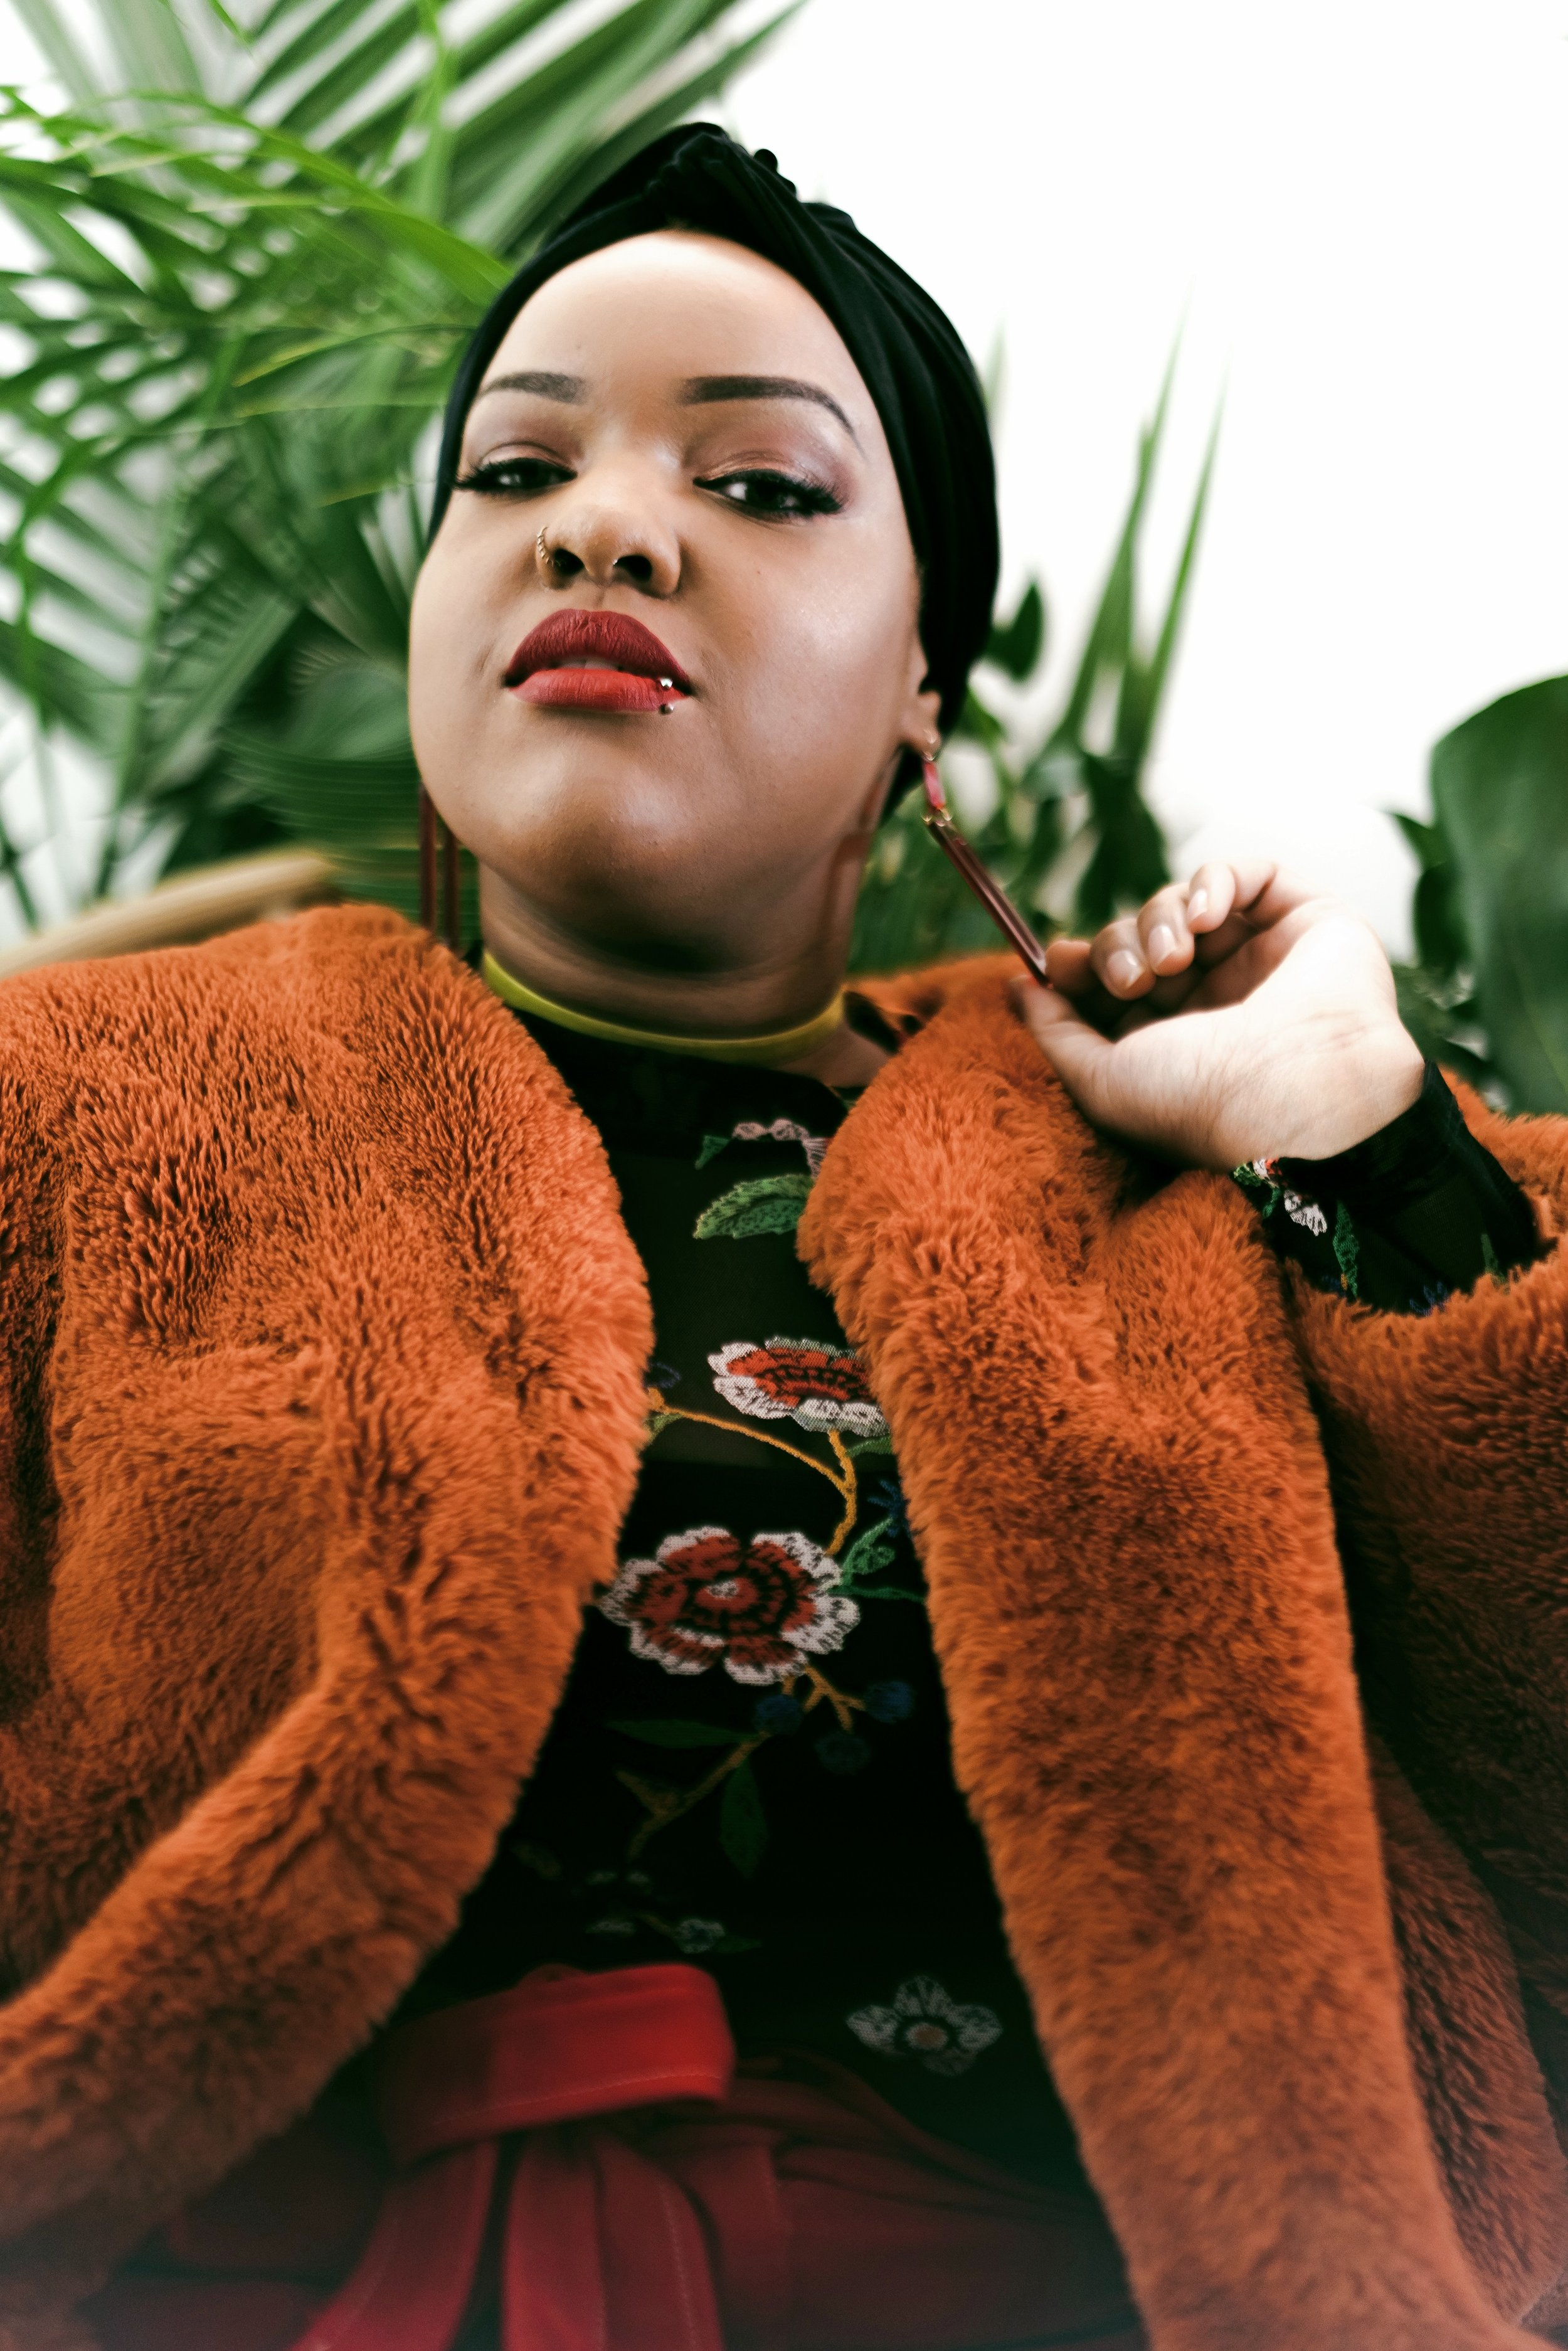 Leah-Vernon-New-York-Blogger-Plus-Size-Model-Body-Positive-Muslim-Girl-Hijabi-Style-Instagram-Influencer-3.jpg